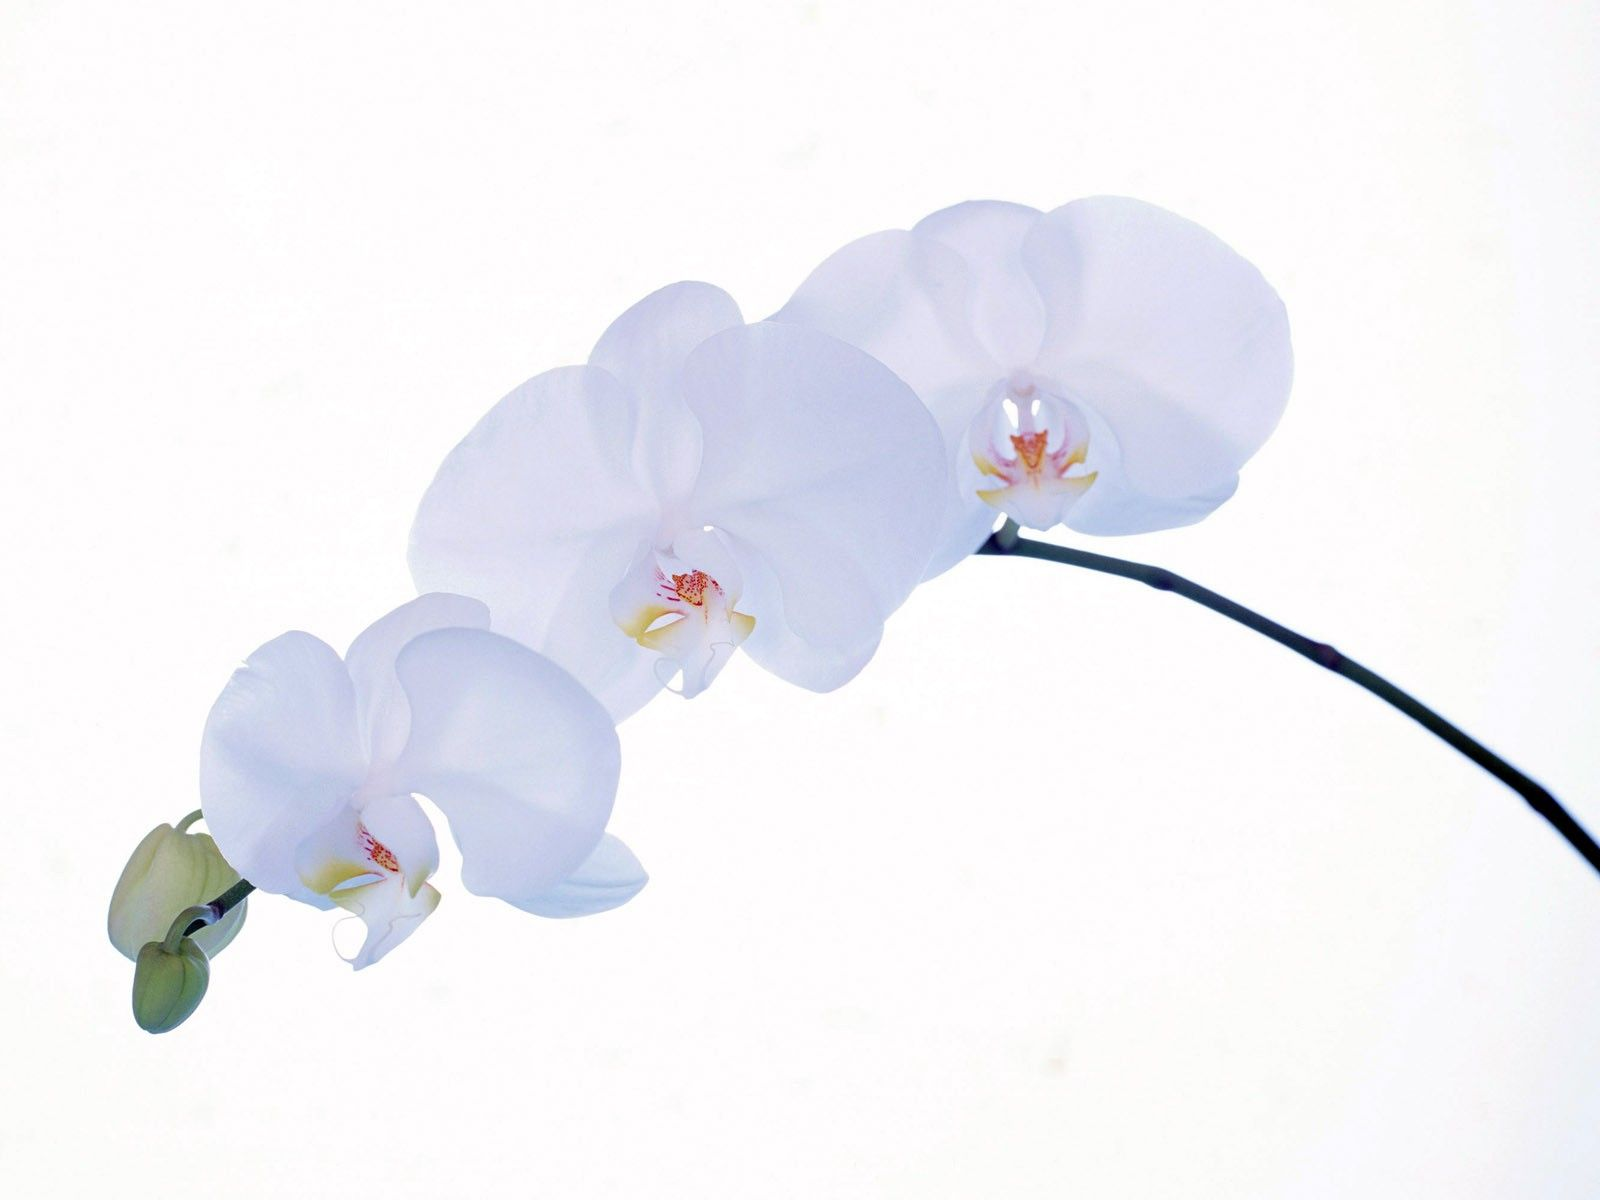 White Orchid Wallpapers Hd Wallpapers Laptop Wallpapers Orchid Wallpaper White Orchids Orchid Photo